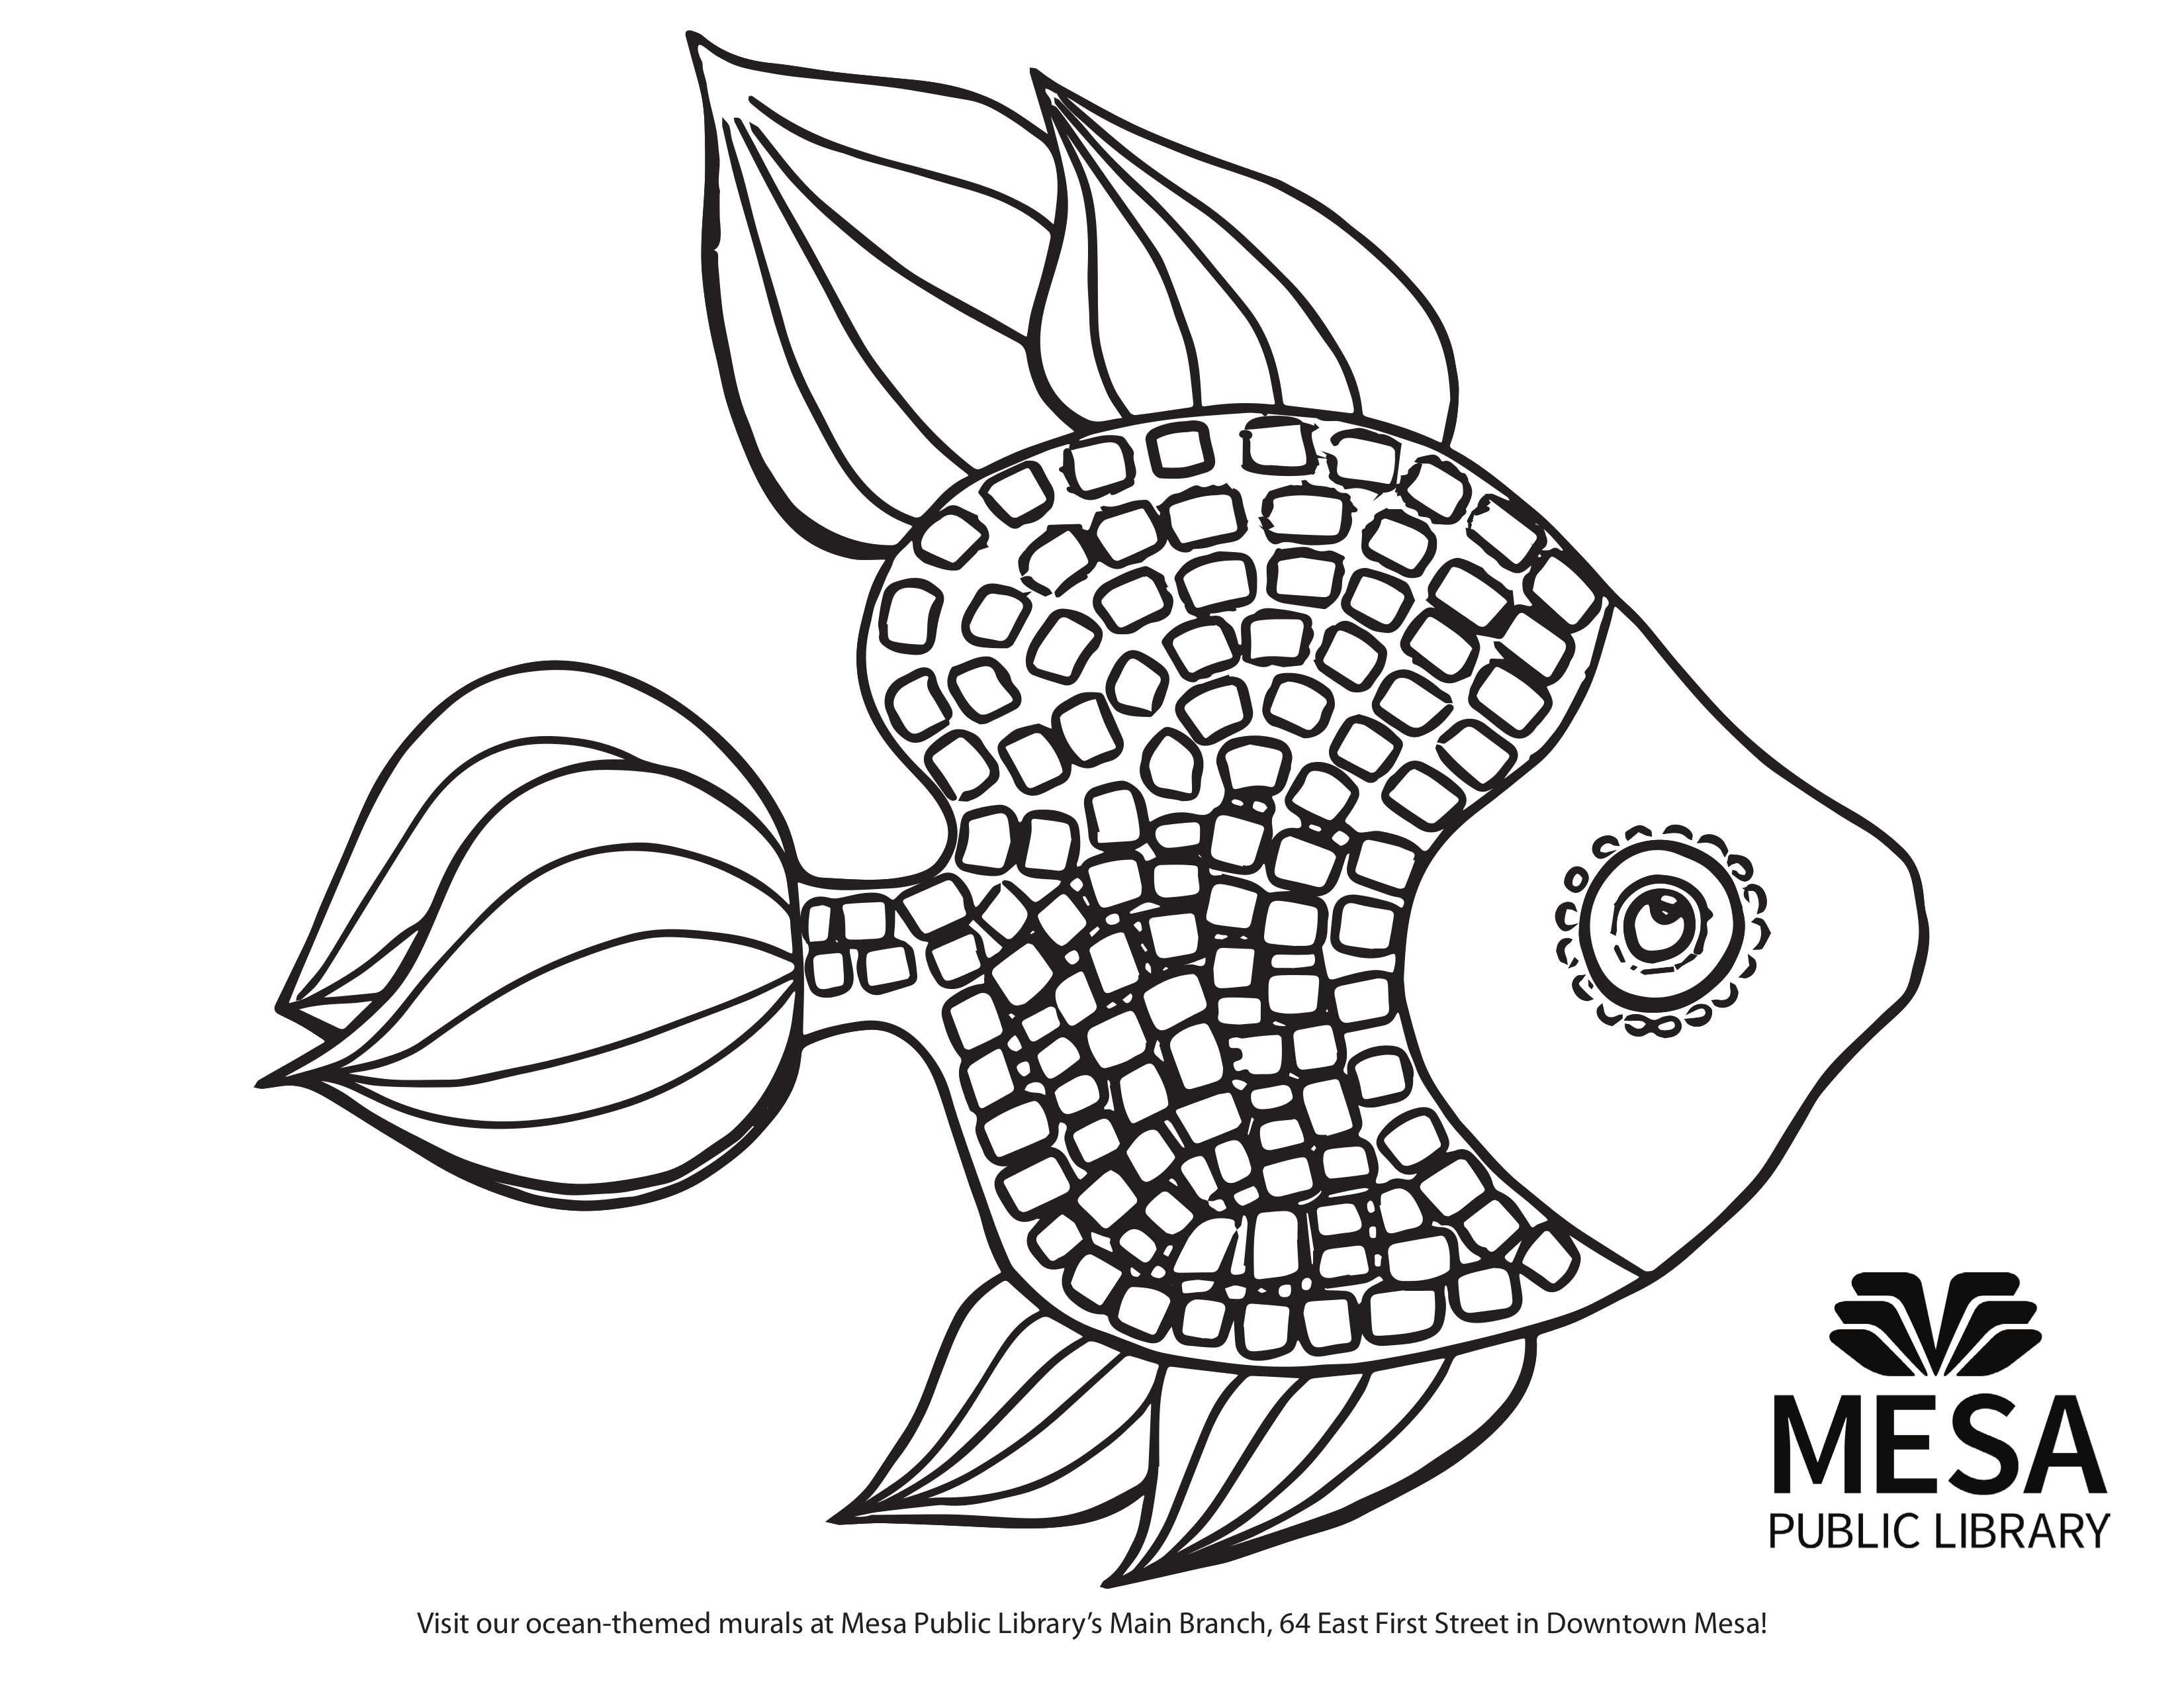 Coloring childrens room - Colorful Fish Ocean Themed Printable Coloring Sheet Based On The Murals In The Children S Room